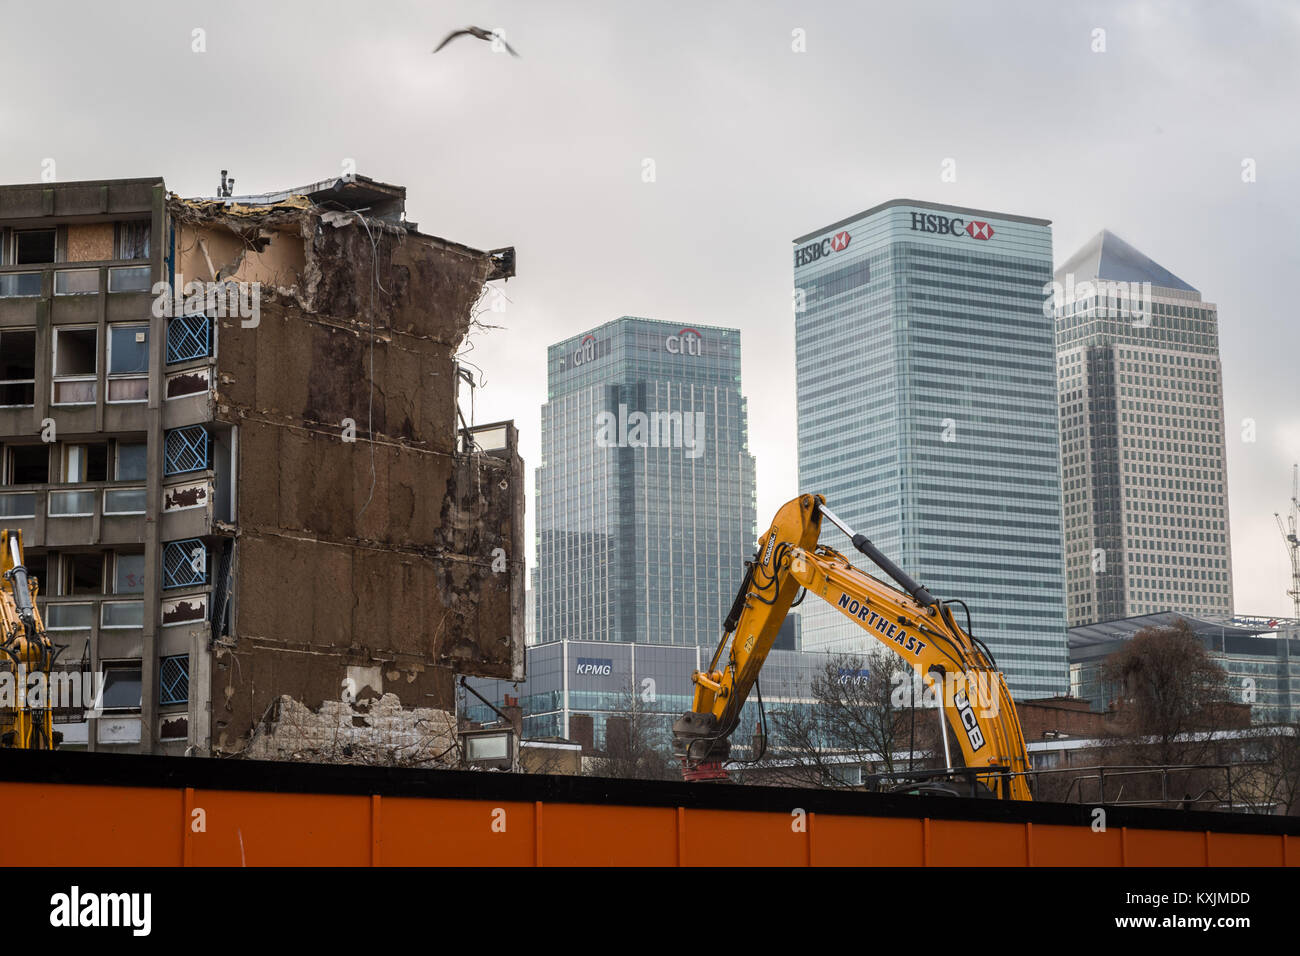 Demolition continues of Robin Hood Gardens, the brutalist post-war housing estate in east London, UK. - Stock Image